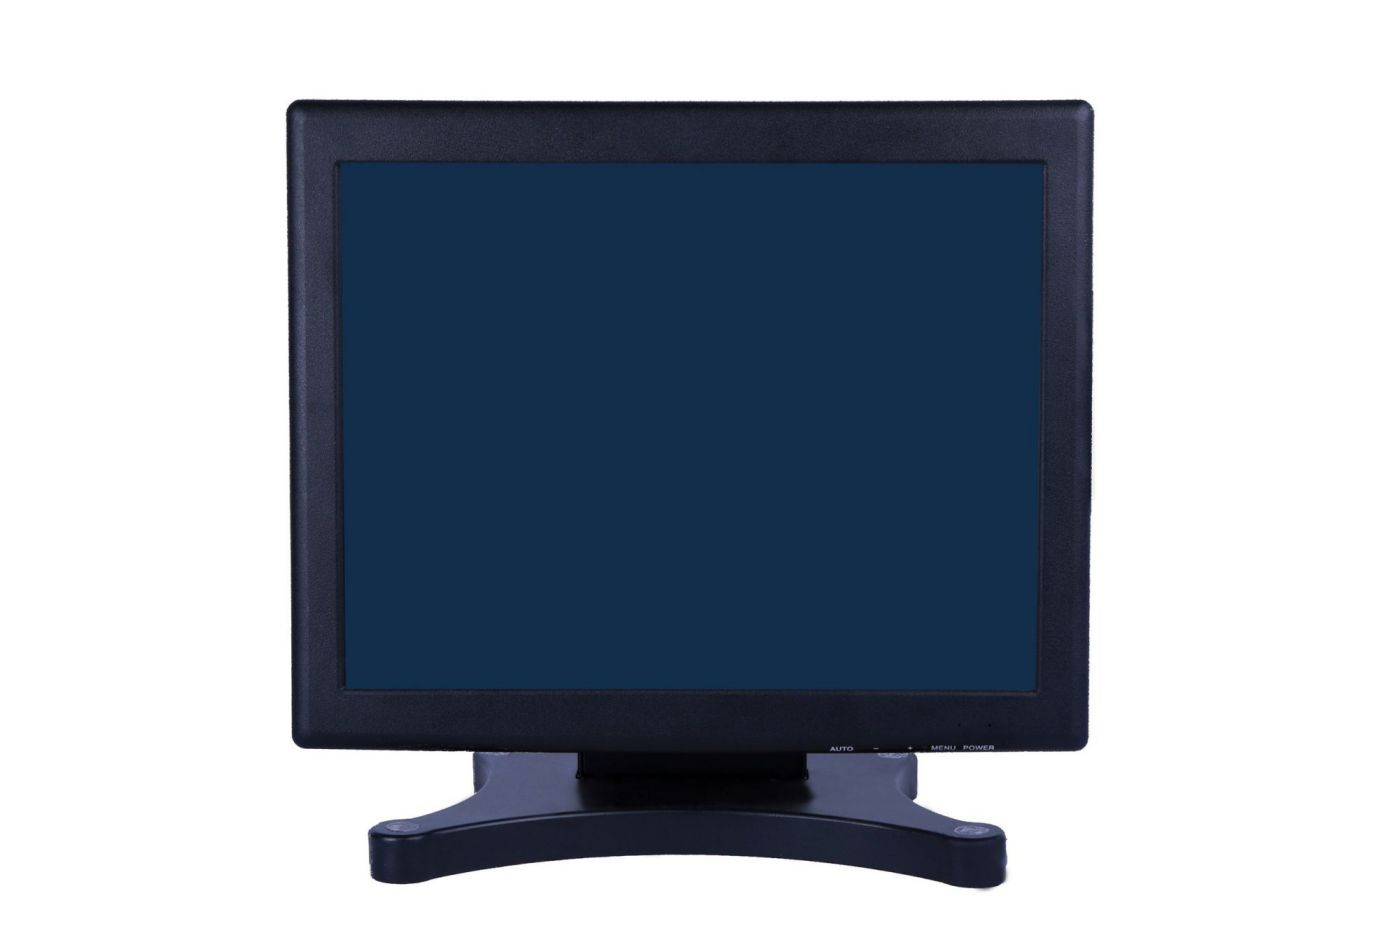 Ver MONITOR TACTIL 17 BLUEBEE TM 217 NEGRO USB